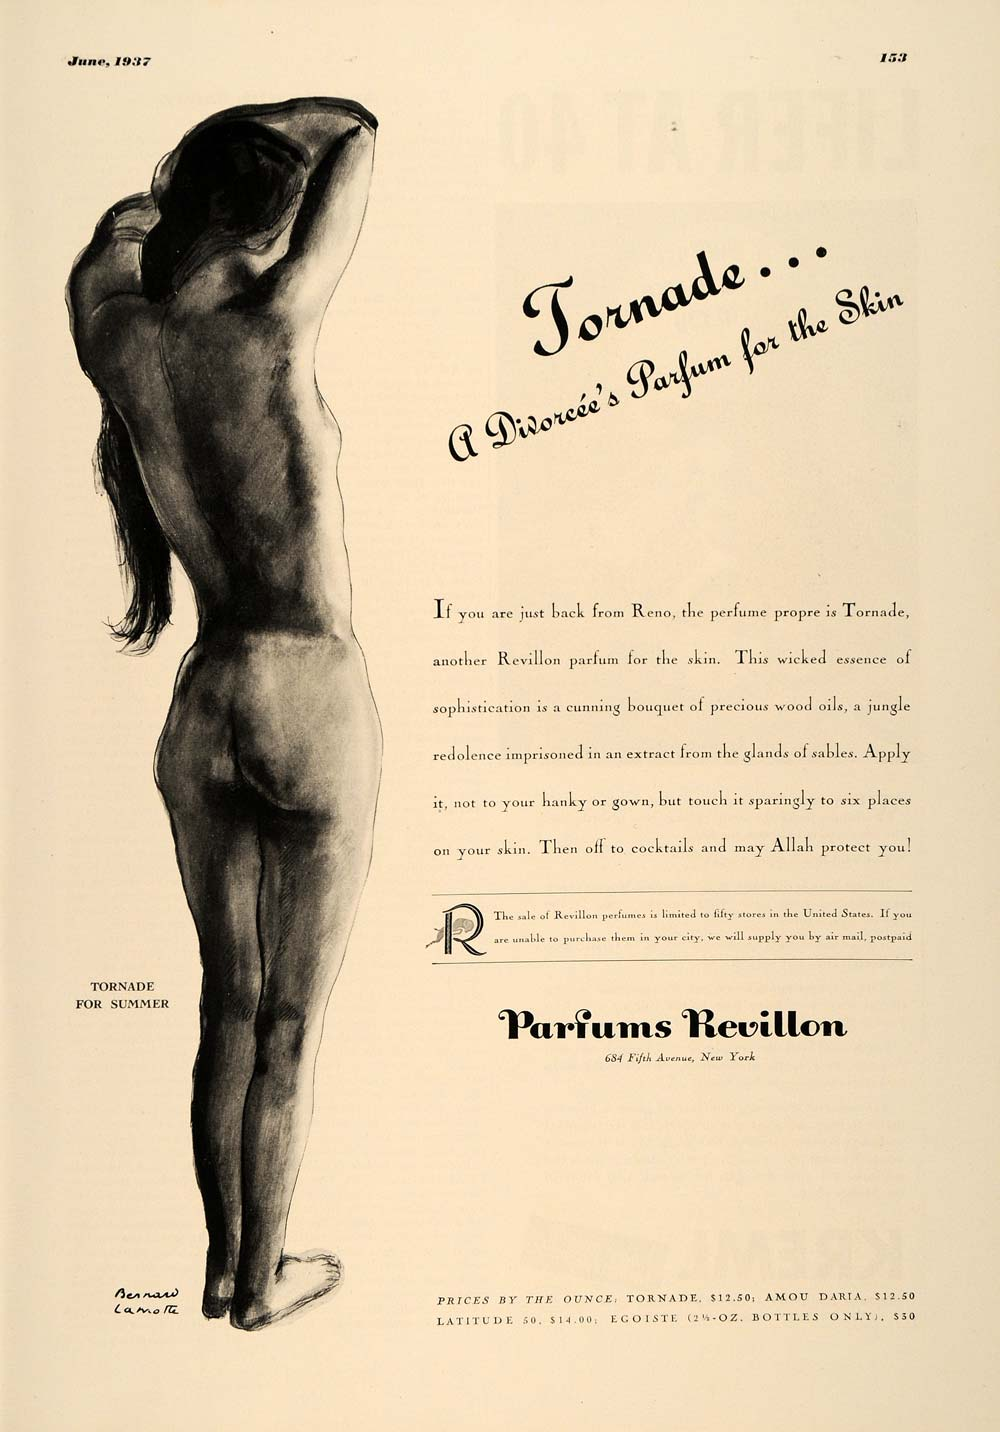 1937 Ad Tornade Perfume Parfums Skin Revillon Nude Body - ORIGINAL ESQ2